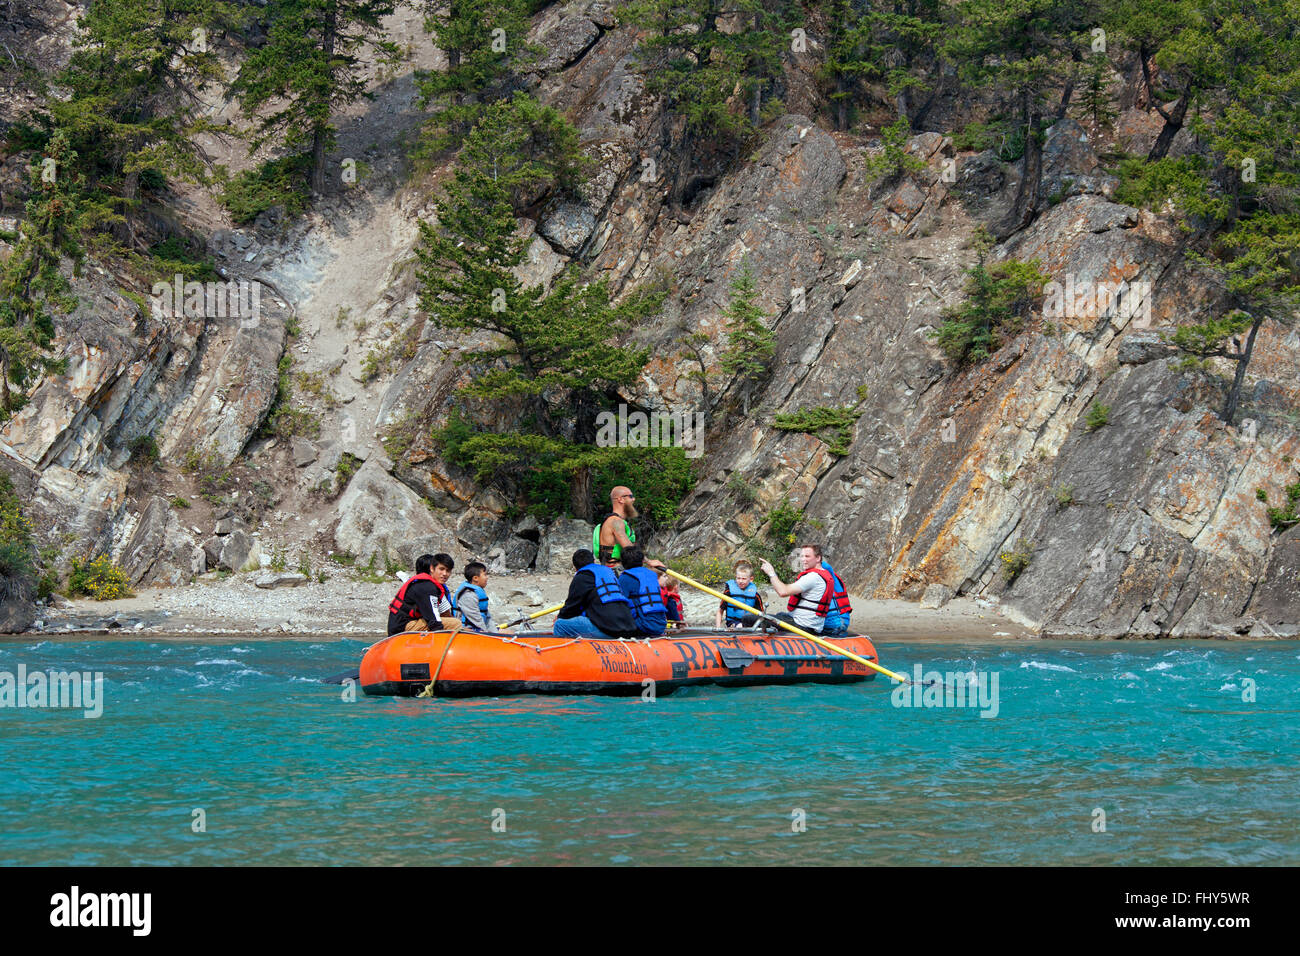 Tourists in inflatable raft rafting on the Bow River near Banff, Alberta, Canada - Stock Image